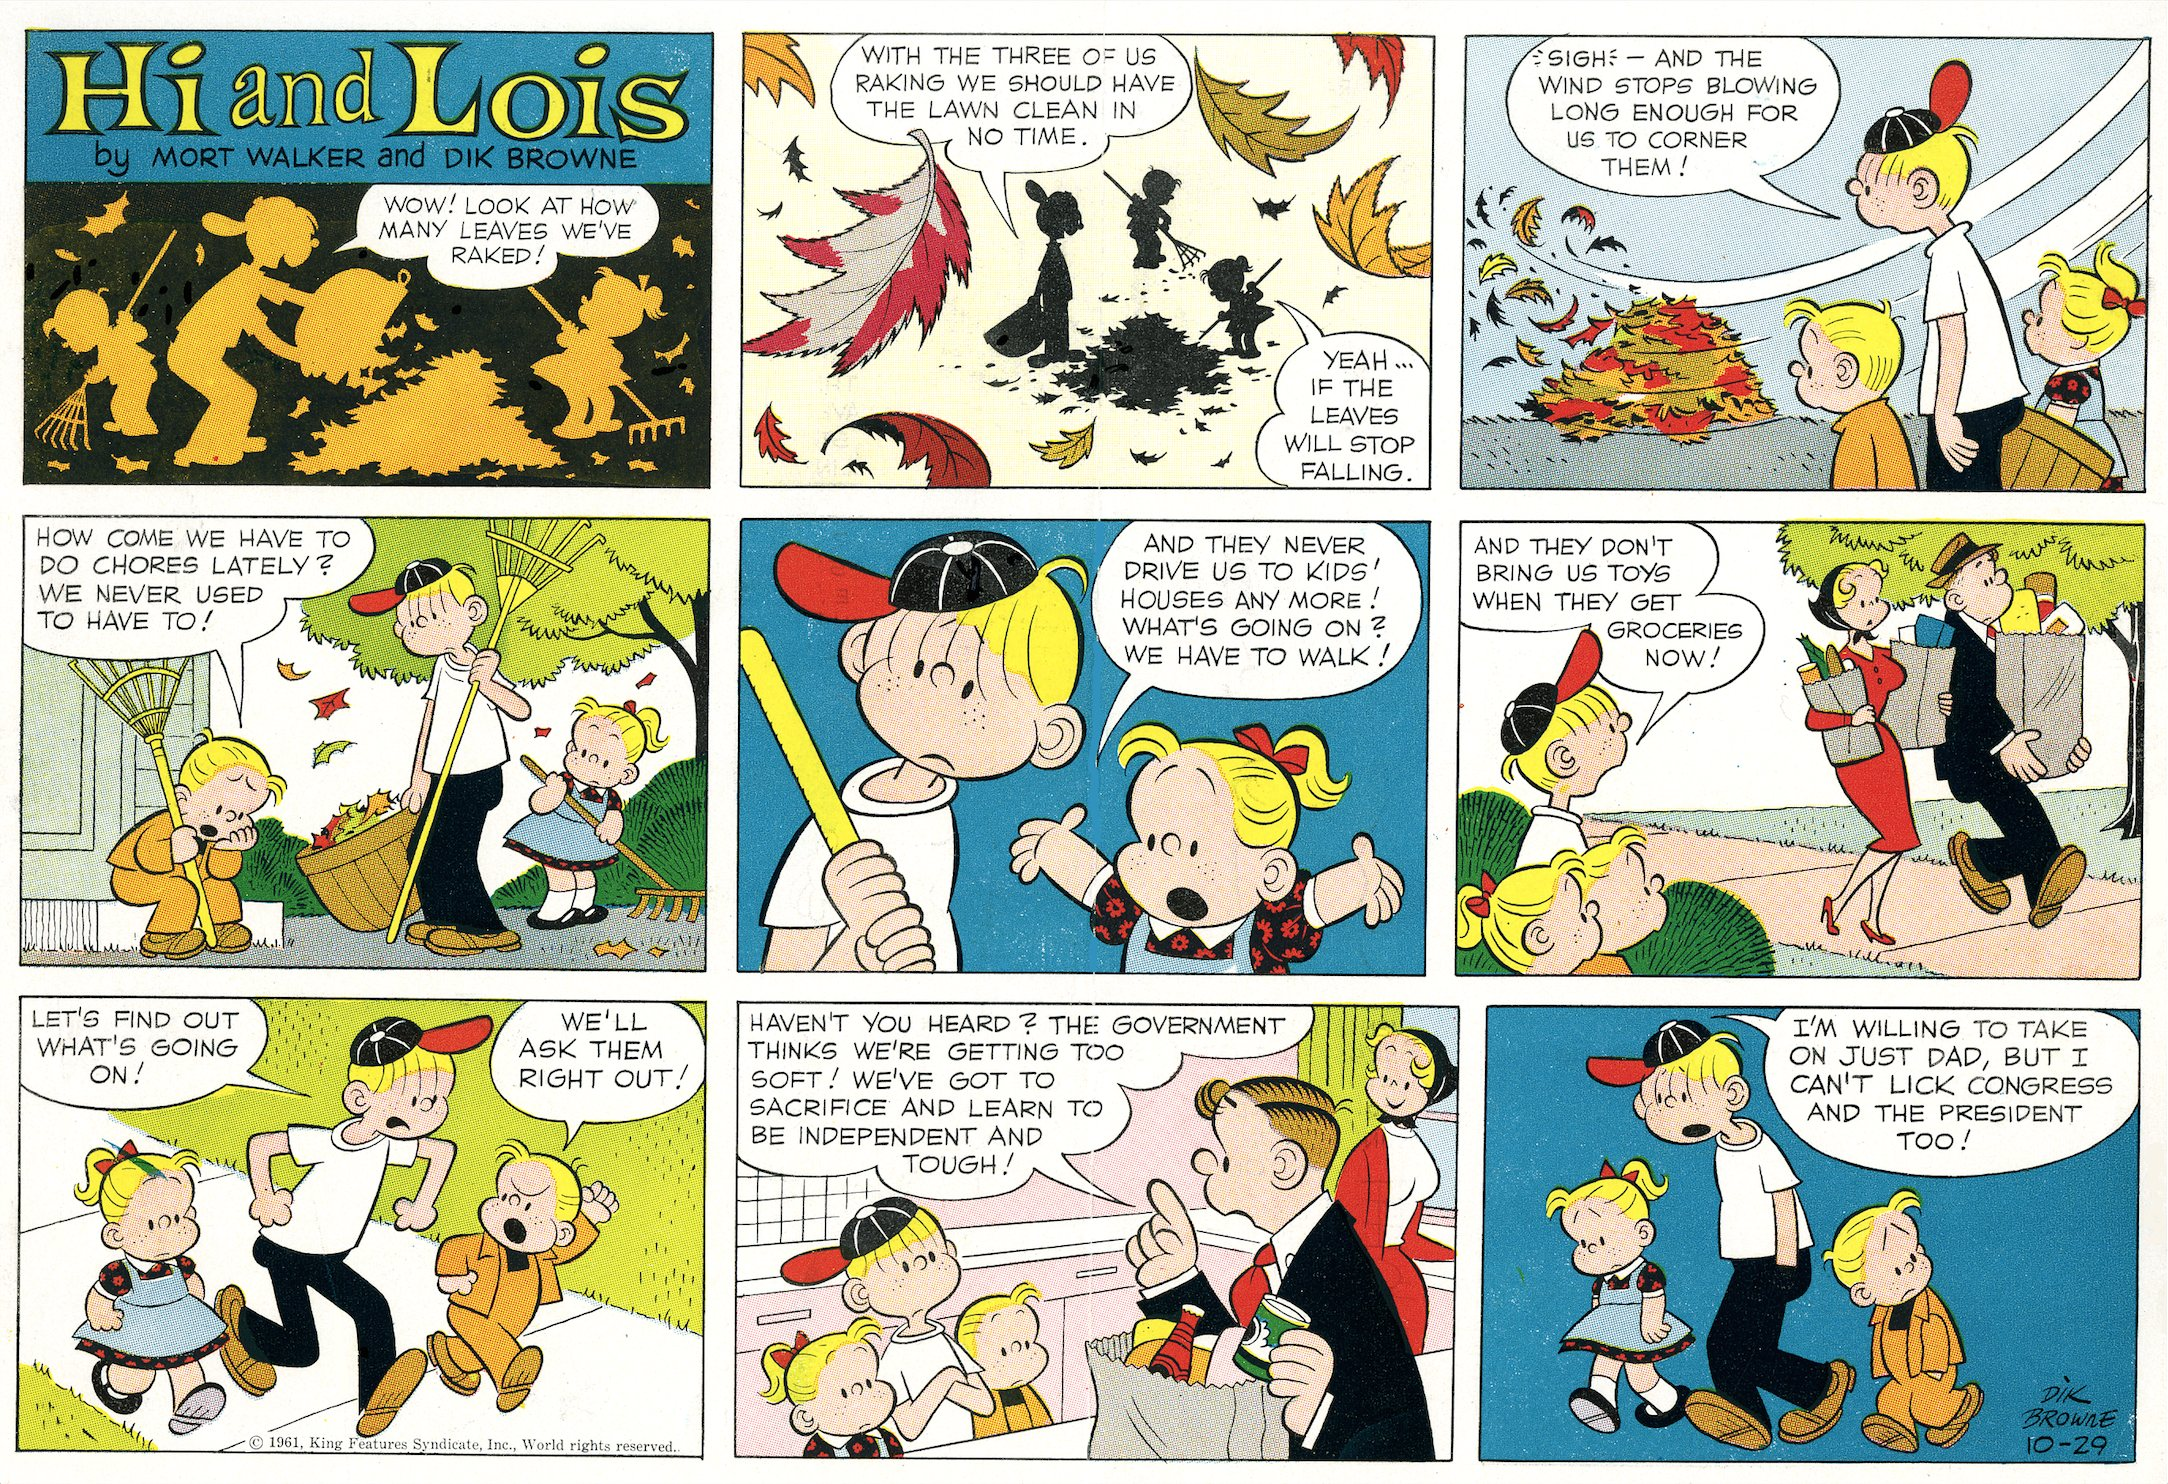 Hi and Lois Sunday page color proof, October 29, 1961.